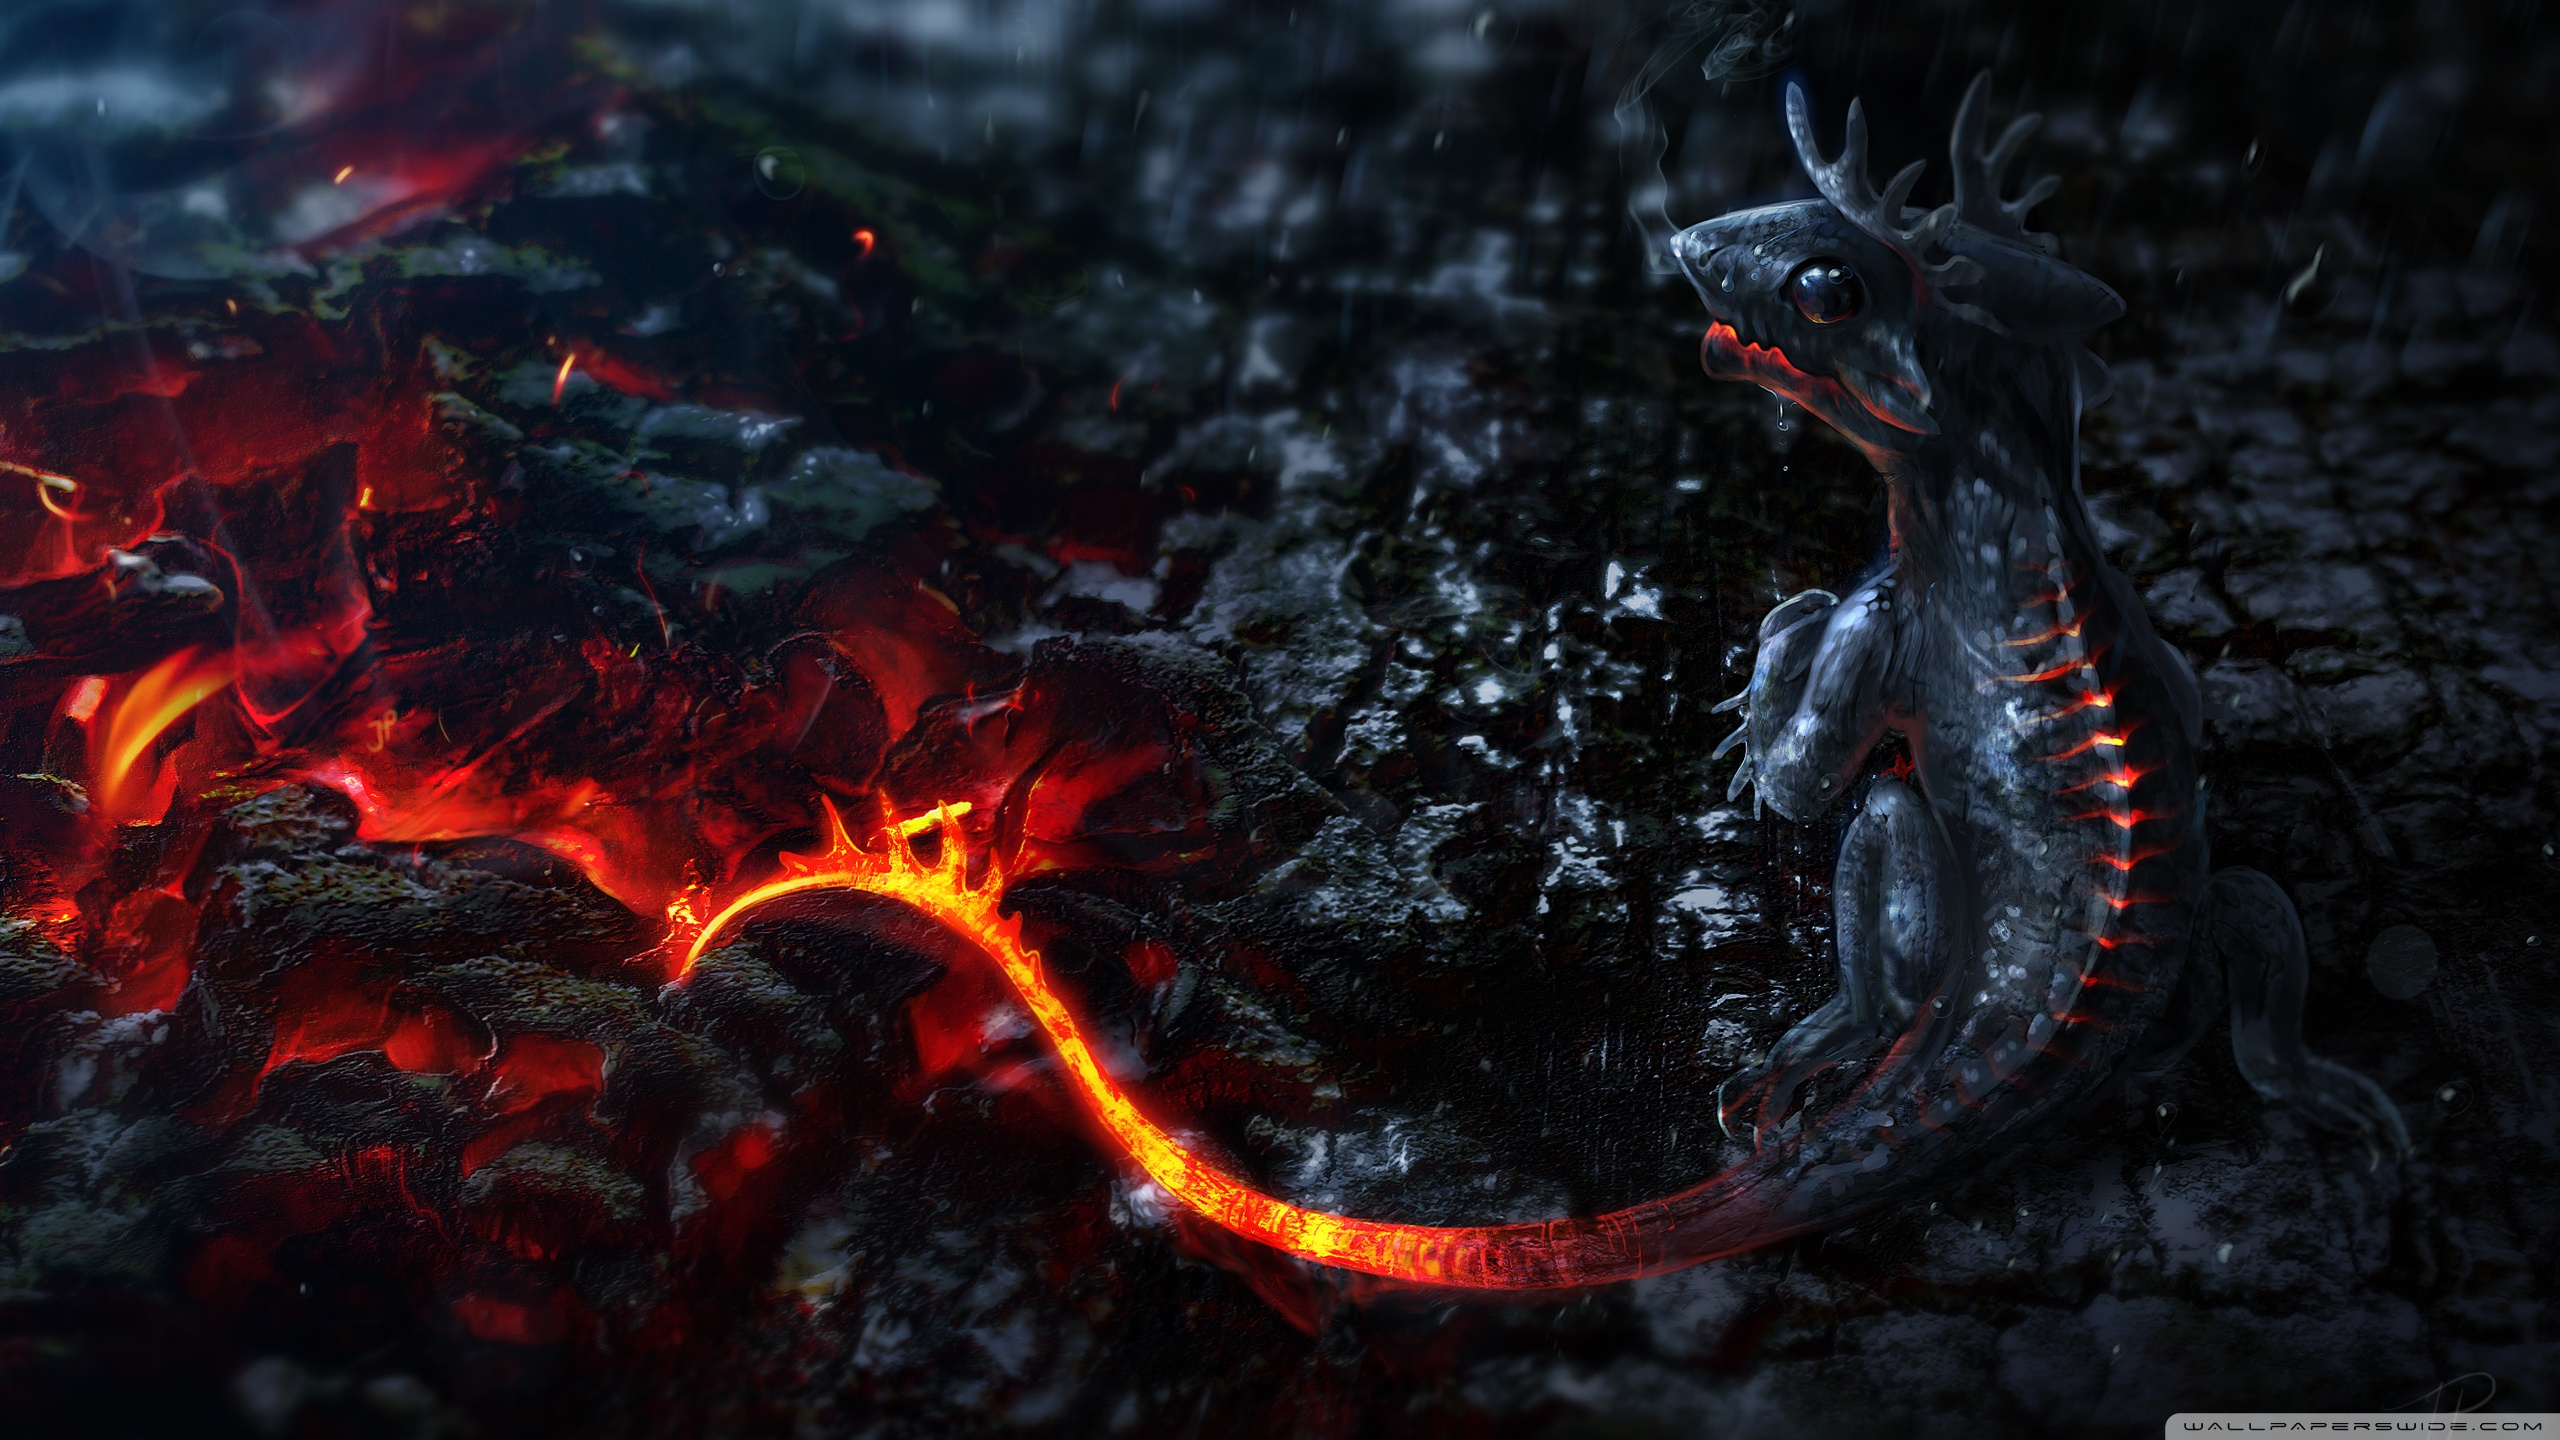 salamander_artwork-wallpaper-2560x1440